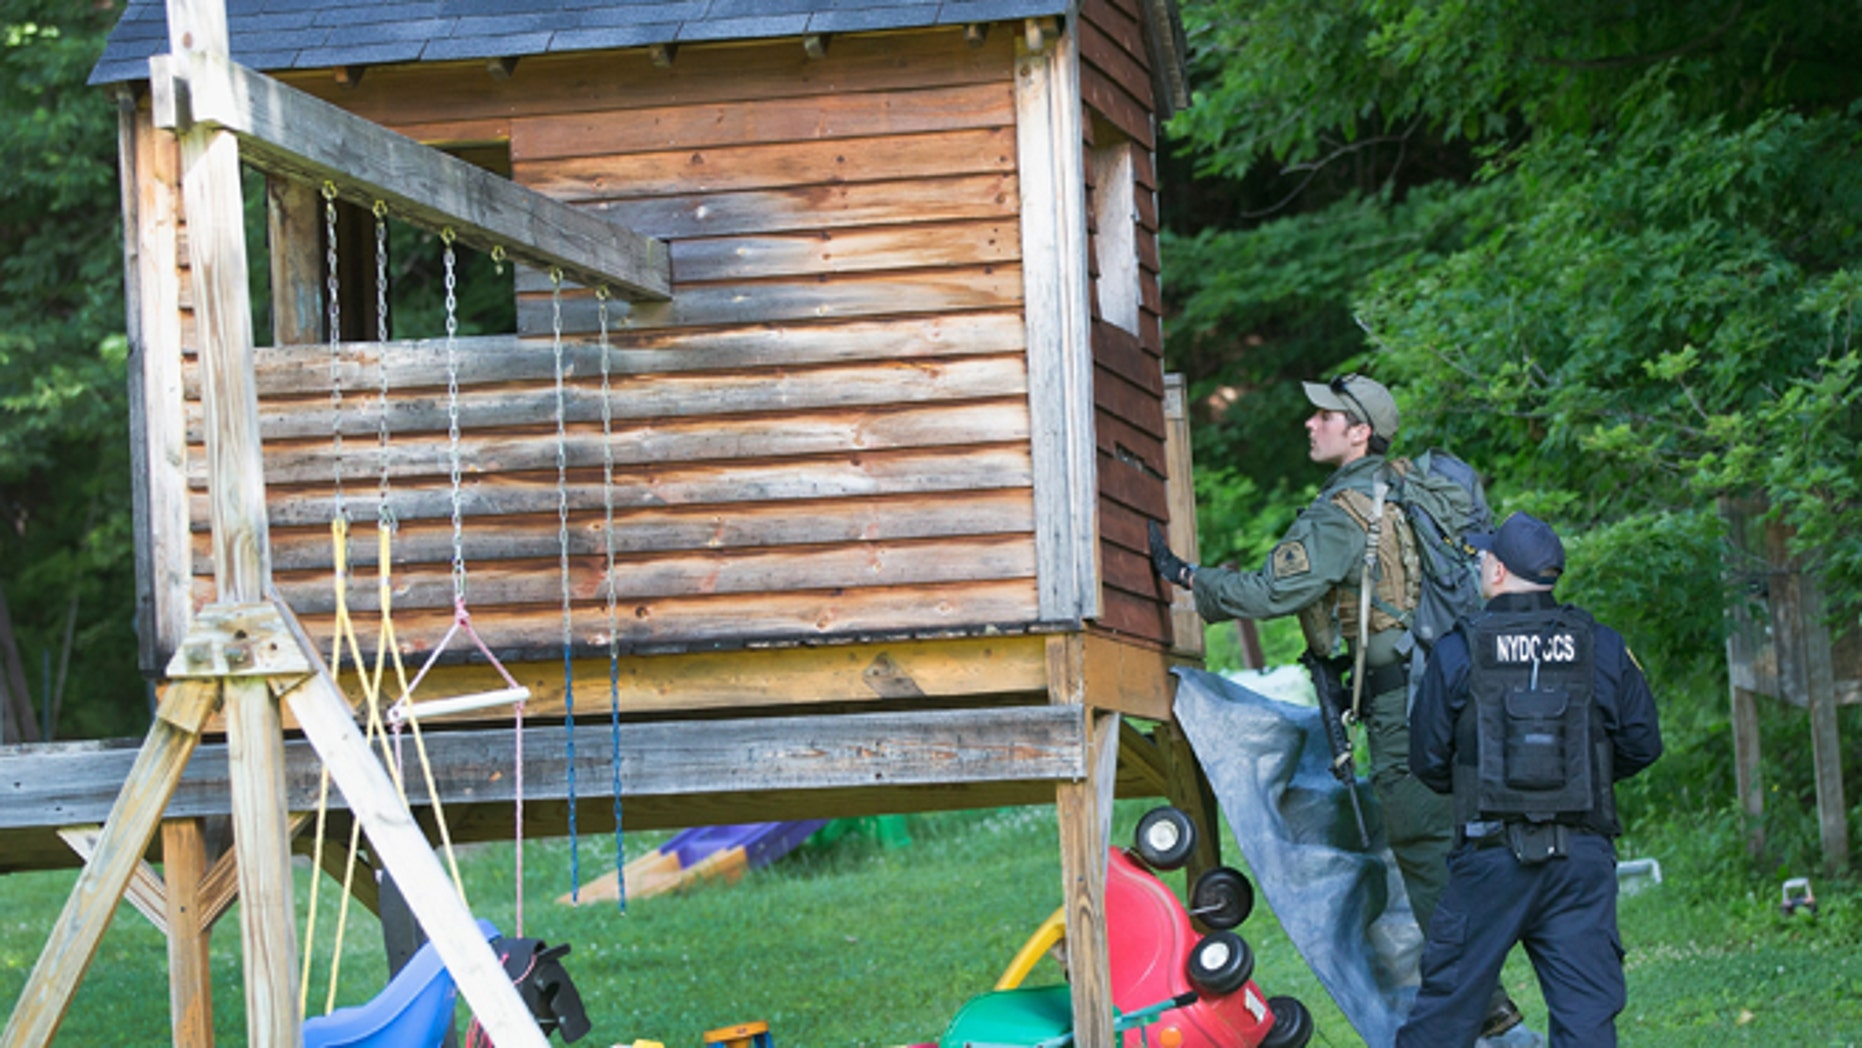 Law enforcement personnel search a child's playhouse as the manhunt for convicted murderers, Richard Matt and David Sweat, on June 26, 2015 in Chasm Falls, New York. (Photo by Scott Olson/Getty Images)